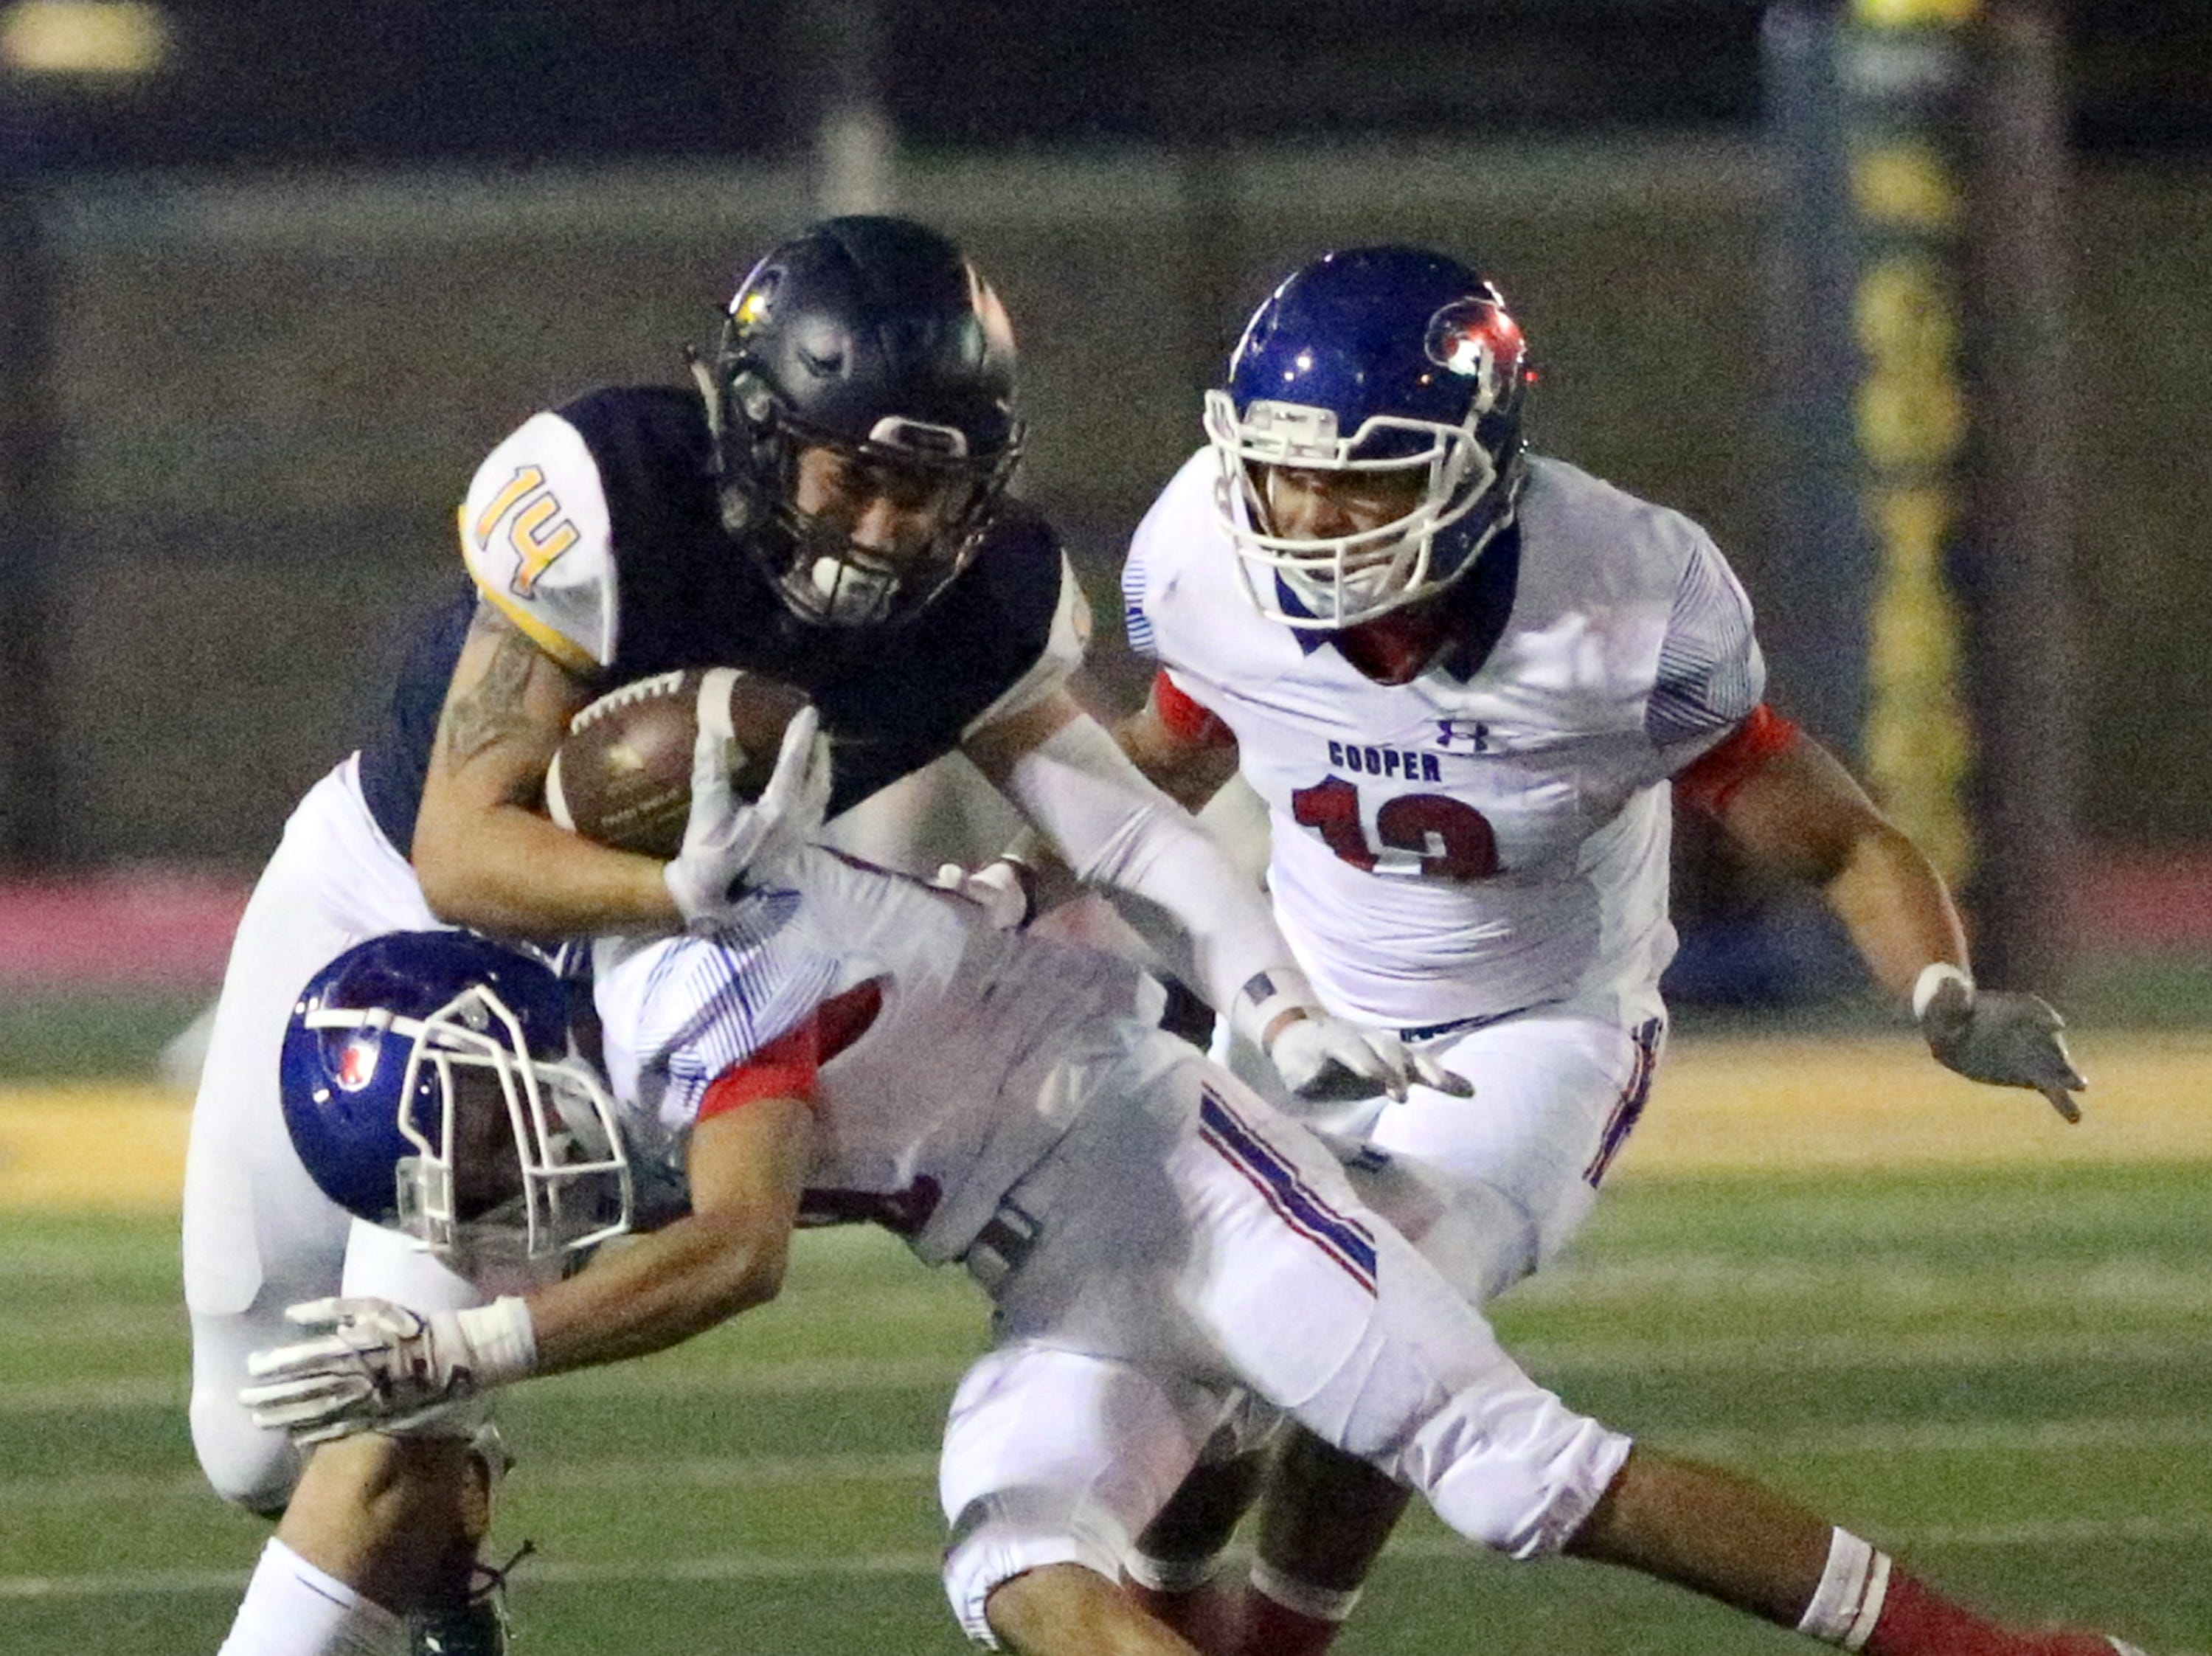 Nathan Samaniego, 14, of Eastwood heads downfield before being stopped by Abilene Cooper defenders Friday night.